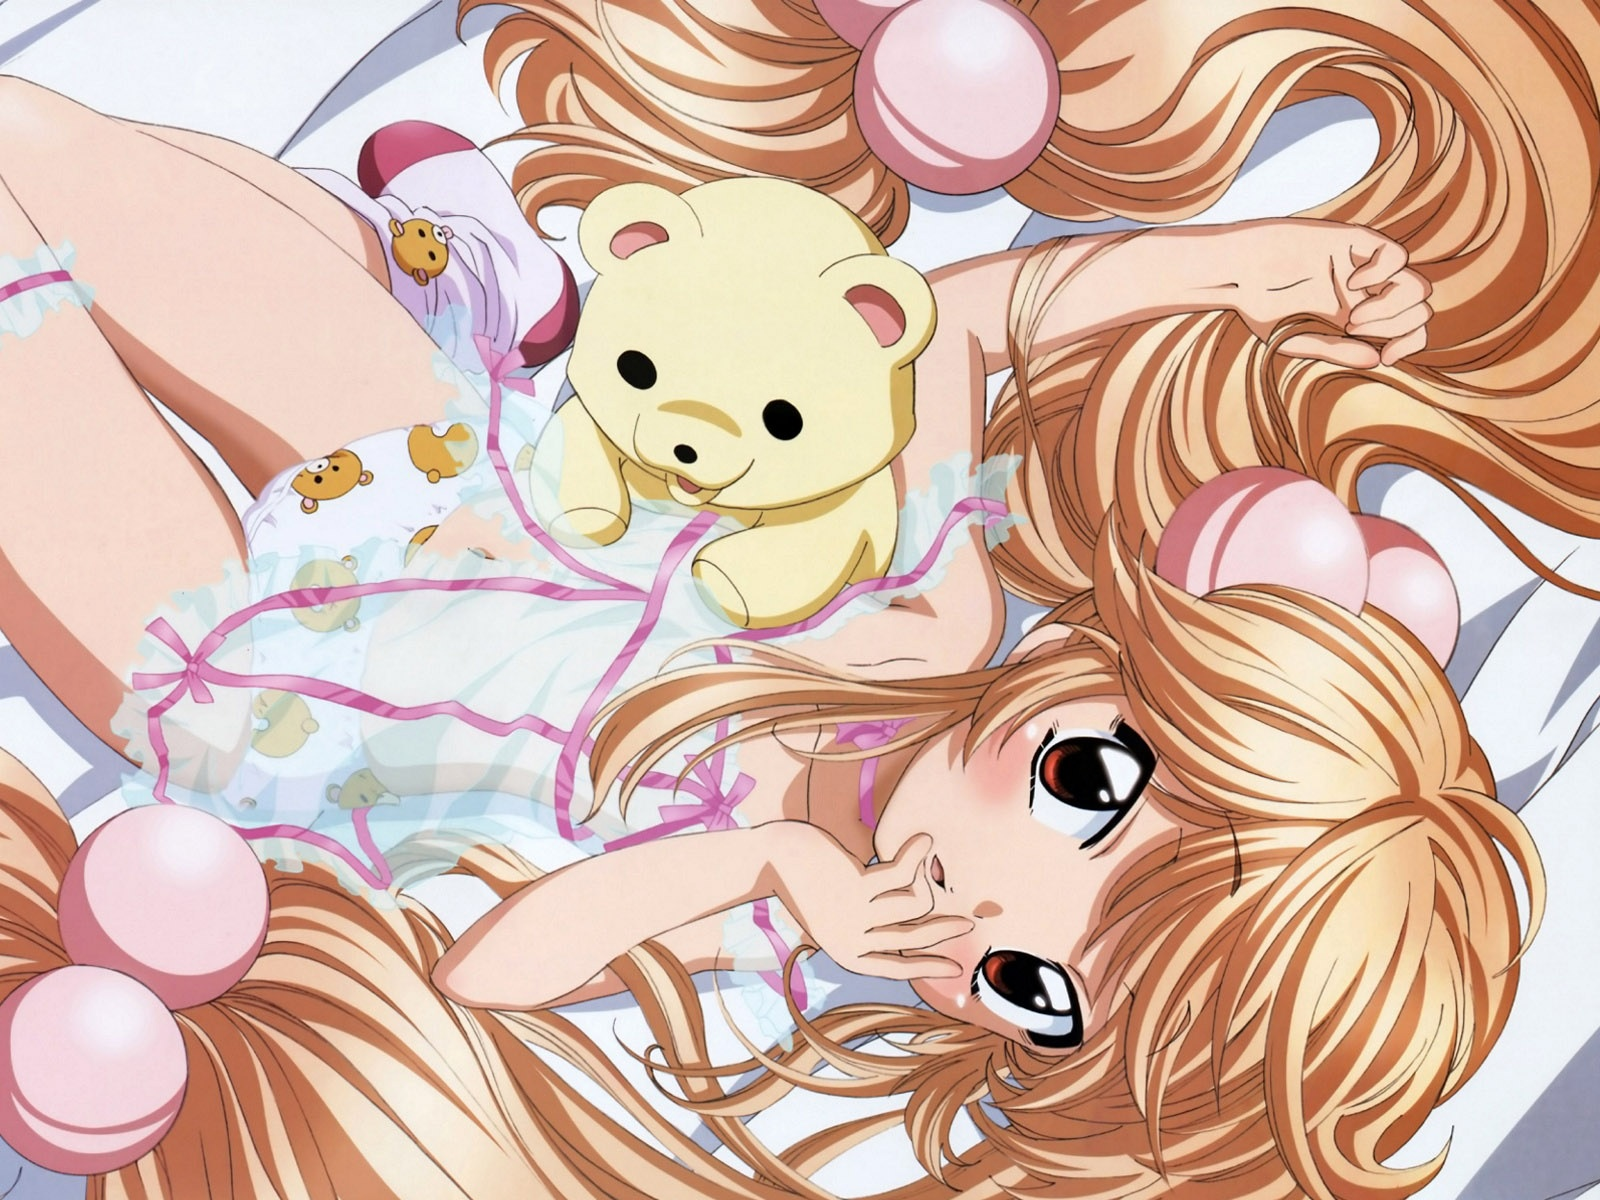 Bed of golden hair anime girl wallpaper 1600x1200